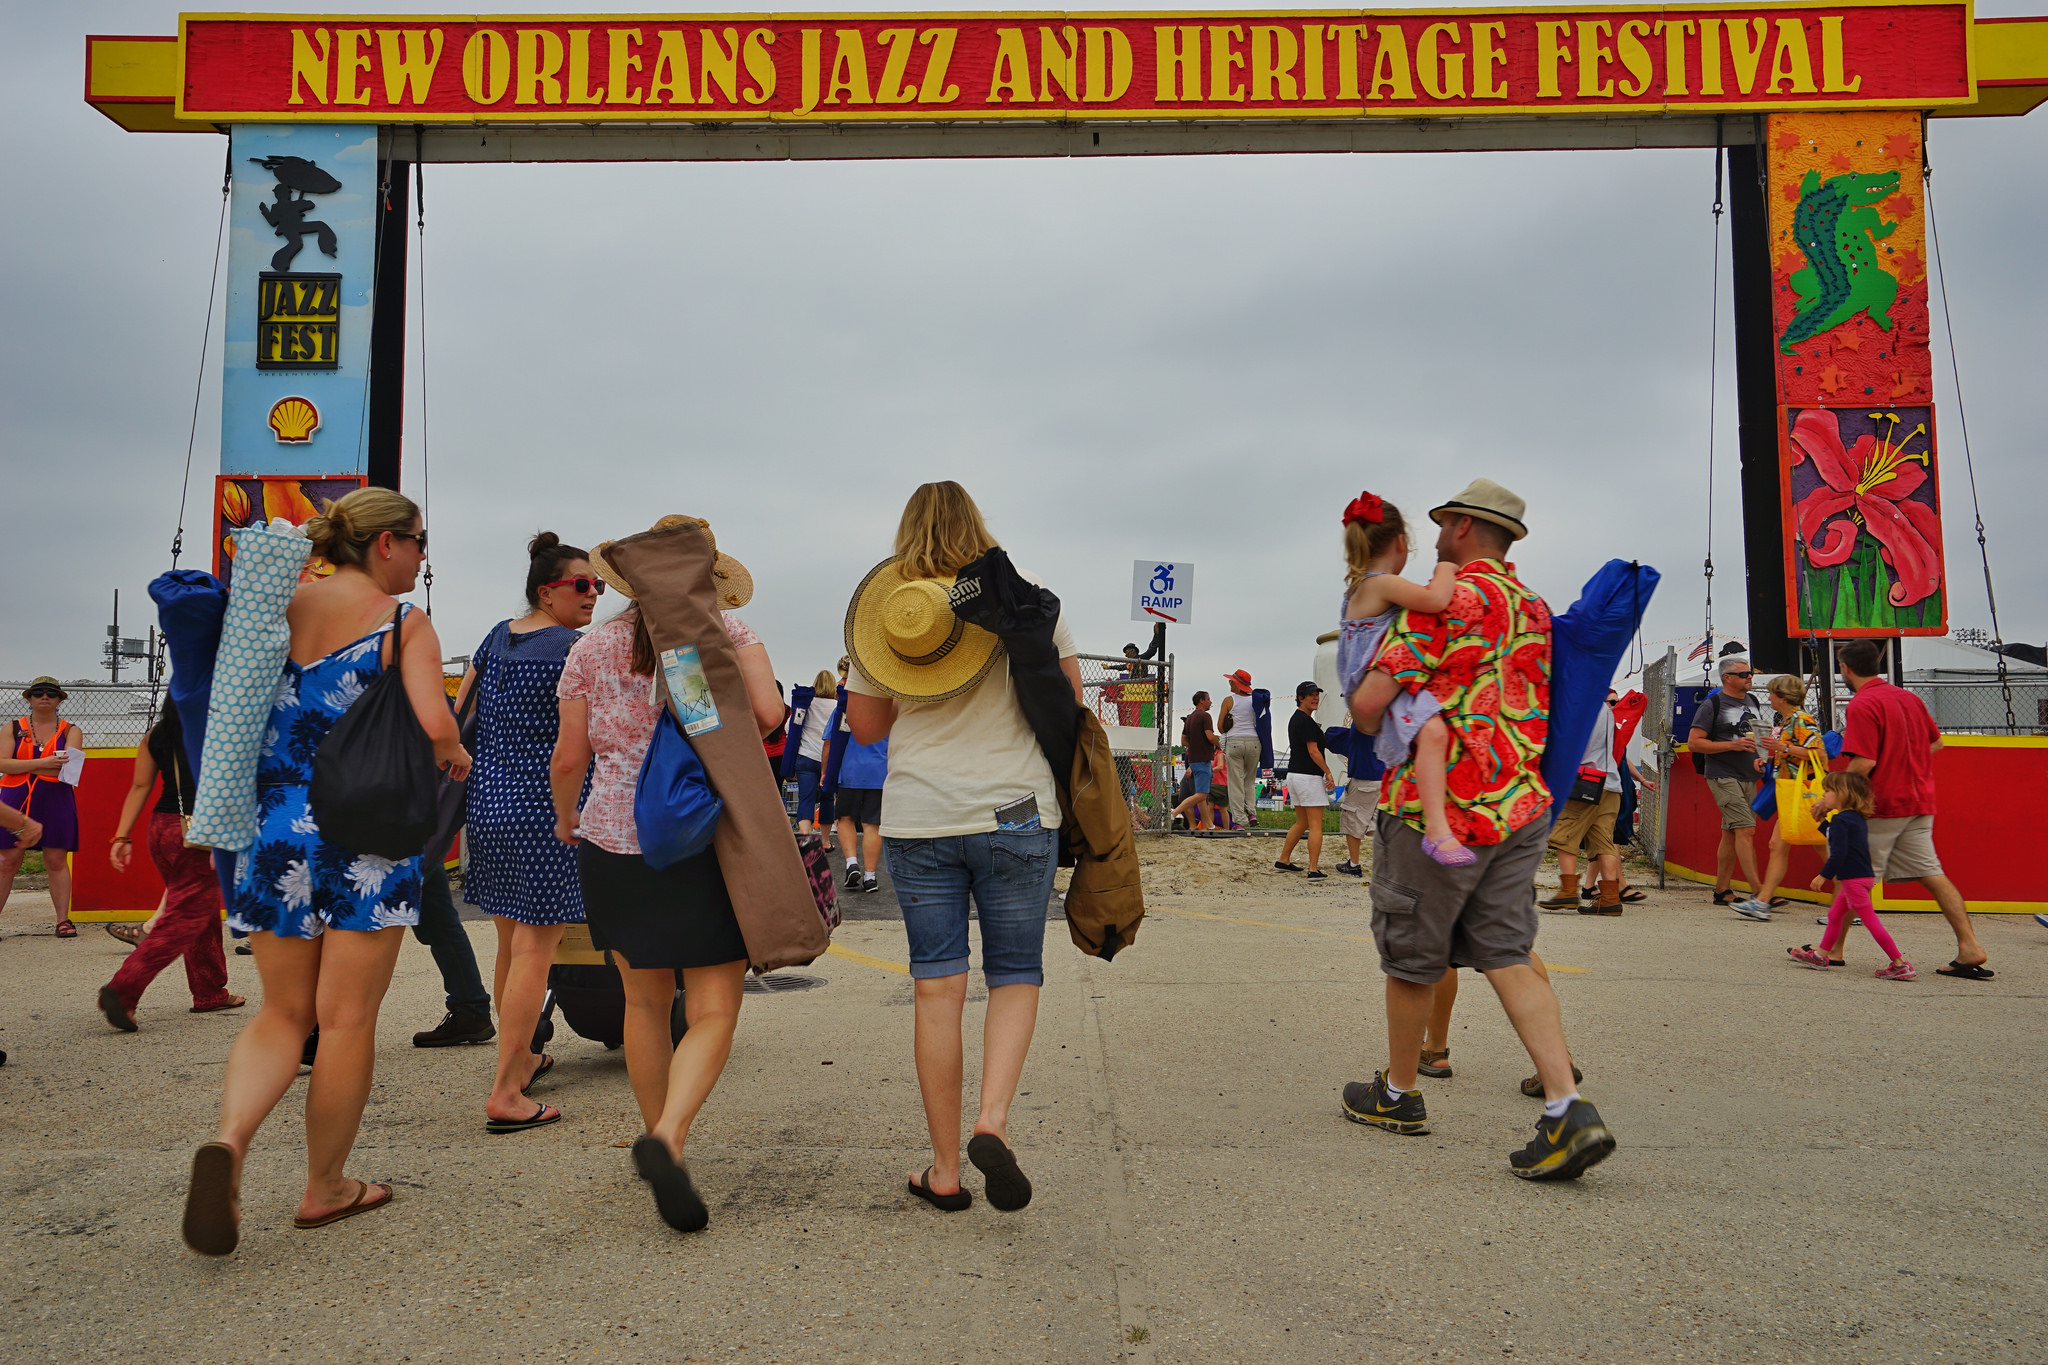 The Jazz Fest entrance. (Photo: Paul Broussard)